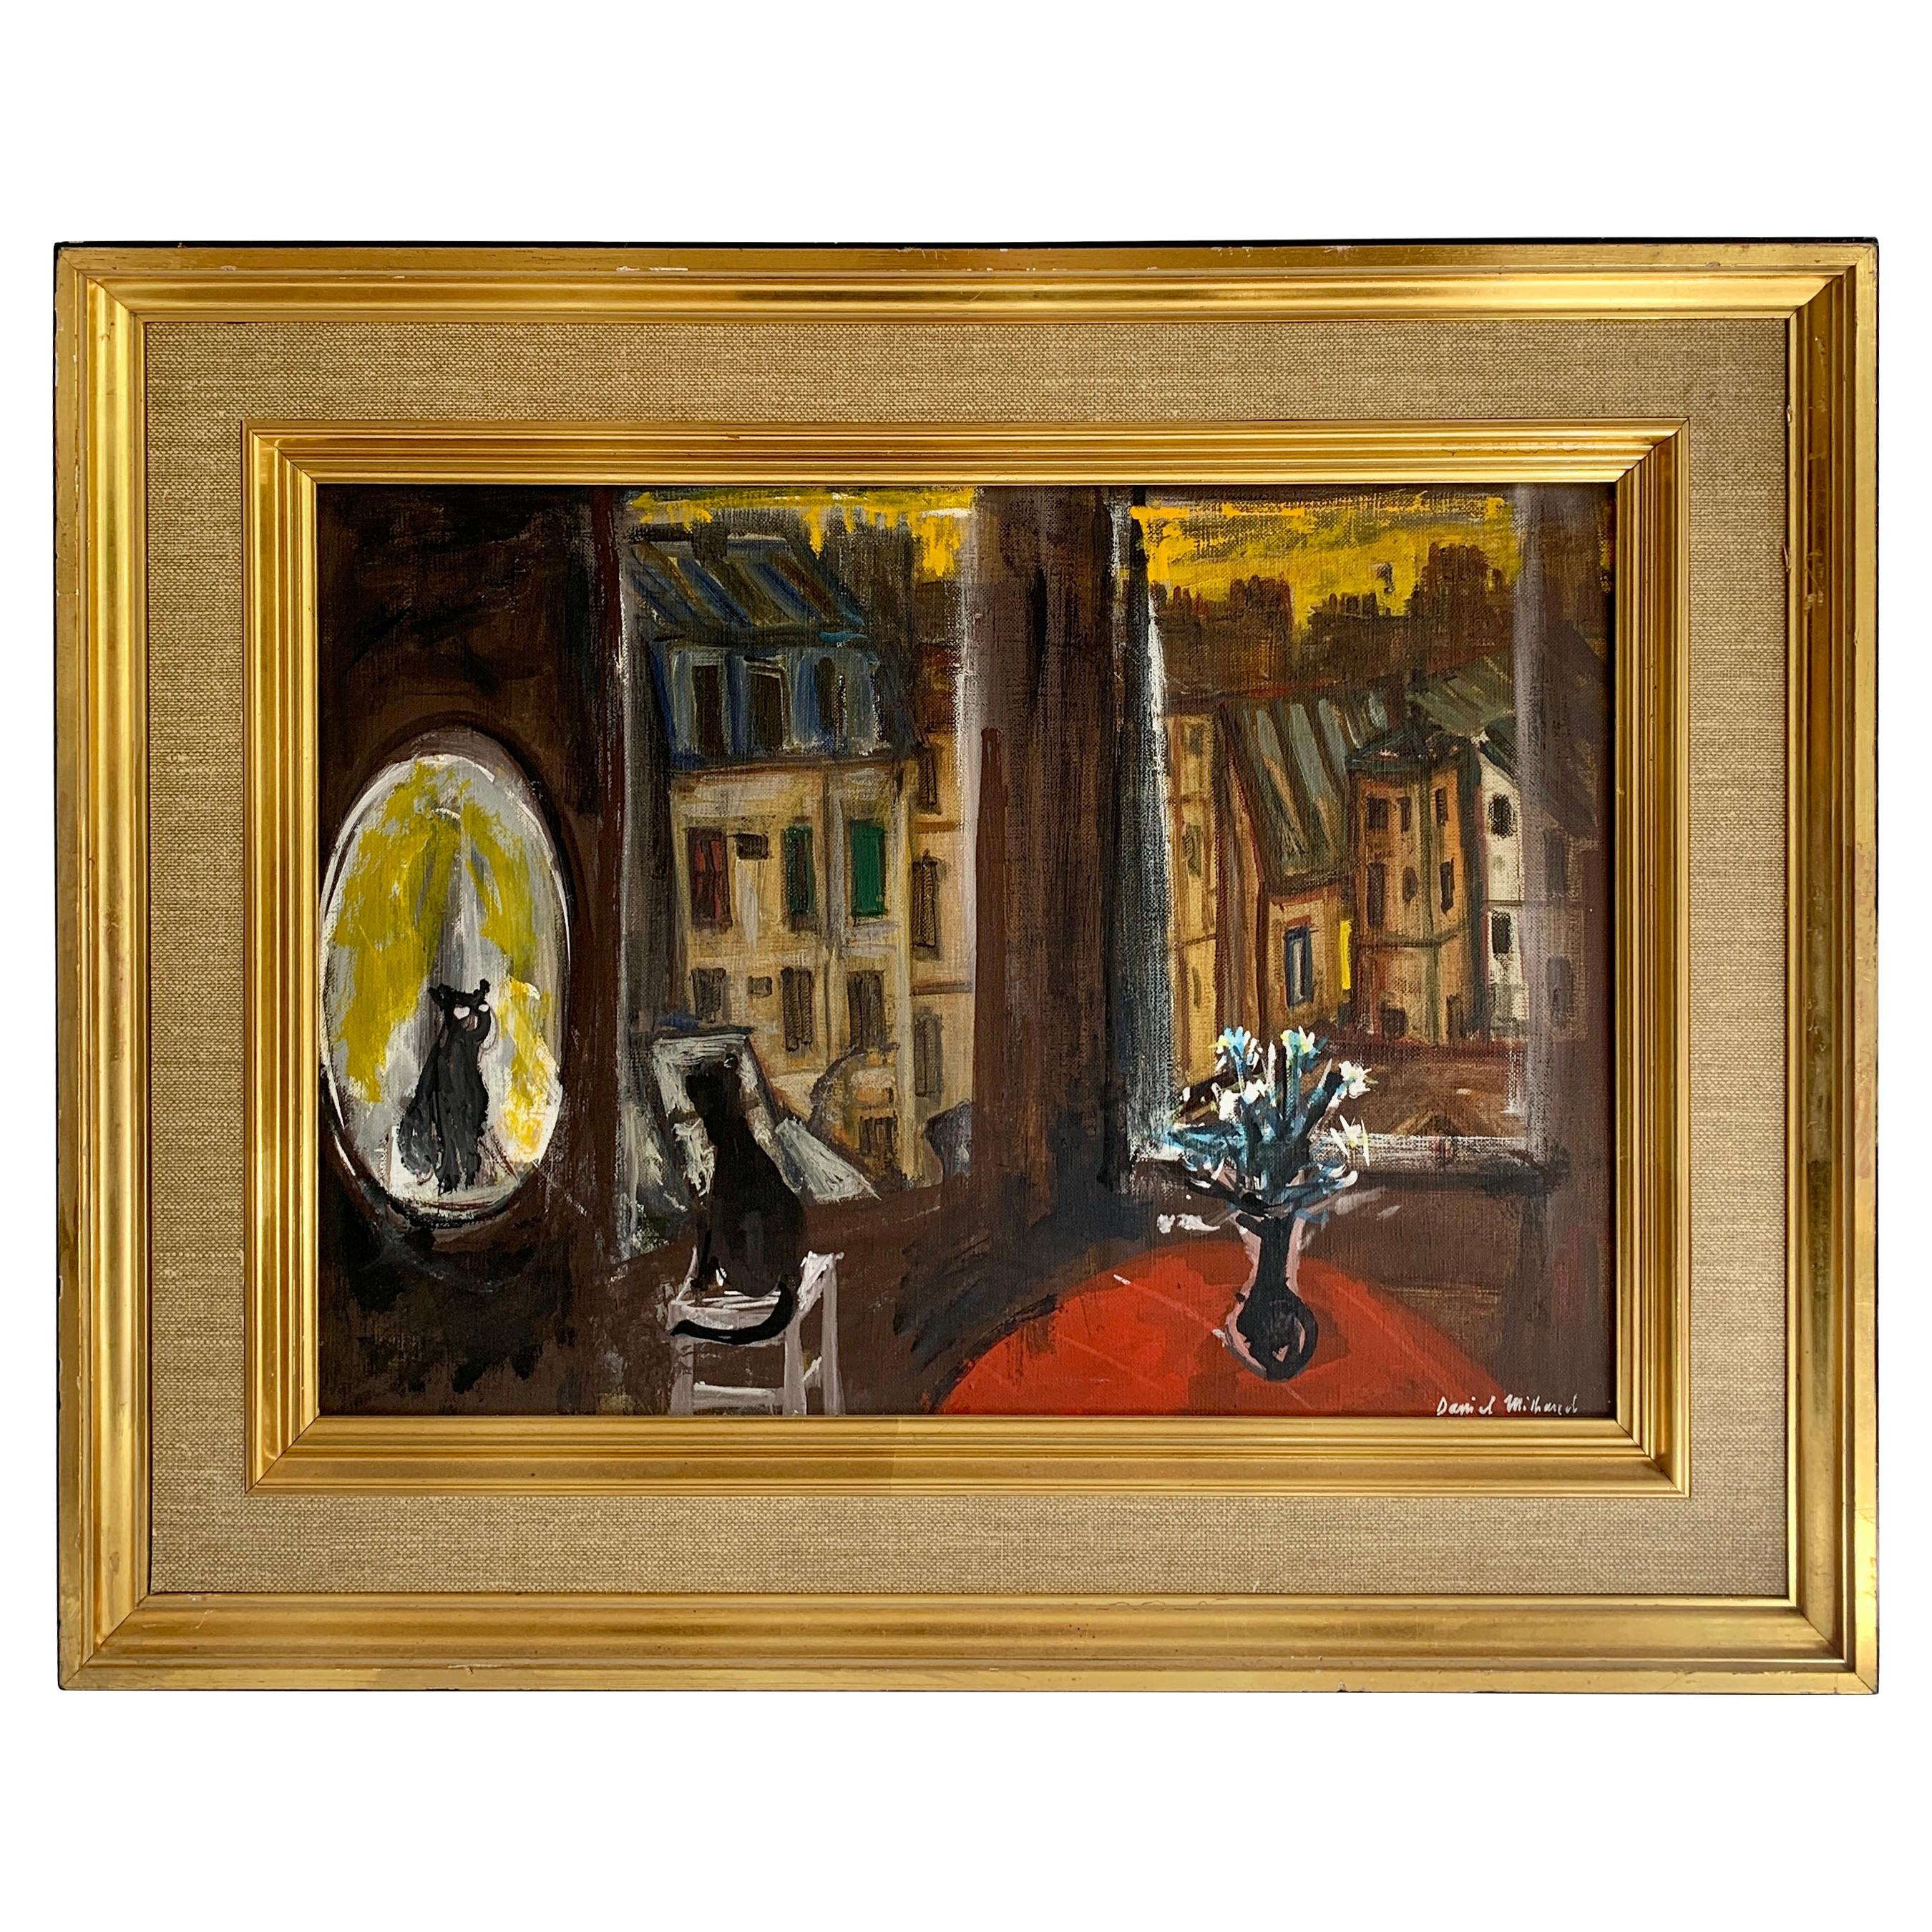 Daniel Mihaud Oil on Canvas Painting of a Cat